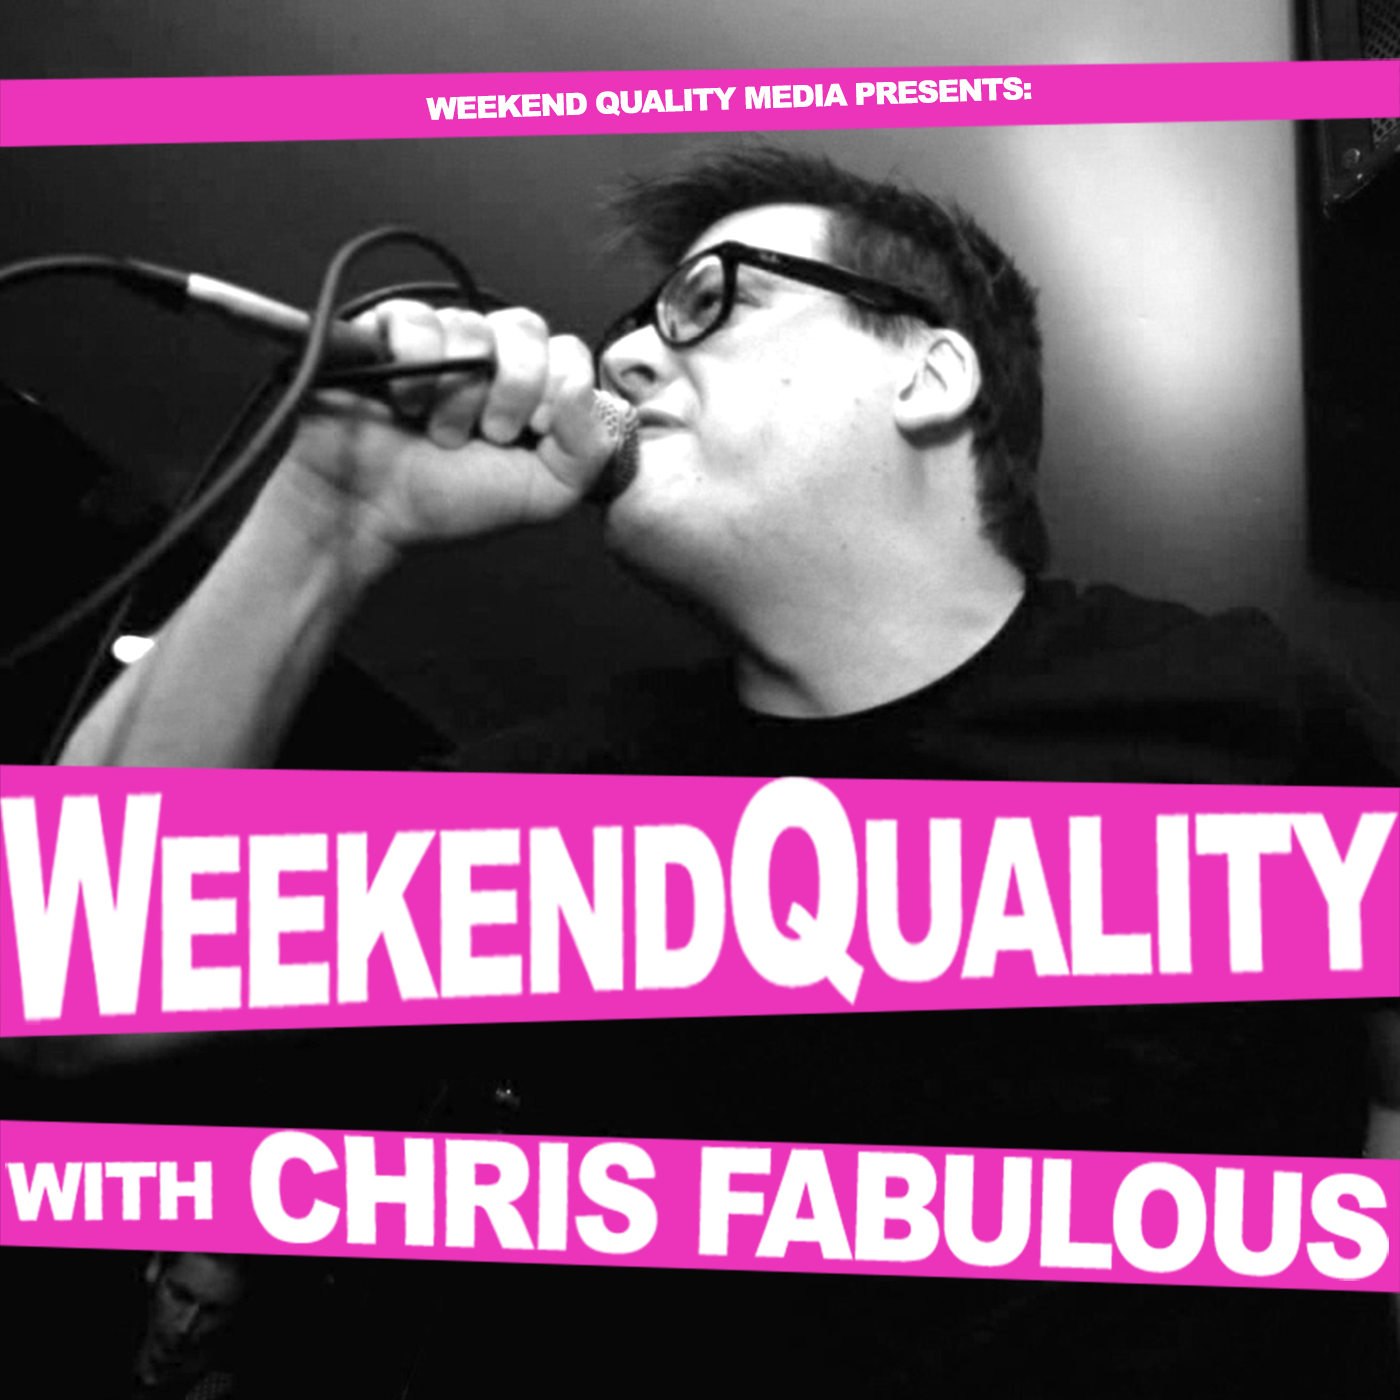 Weekend Quality with Chris Fabulous show art